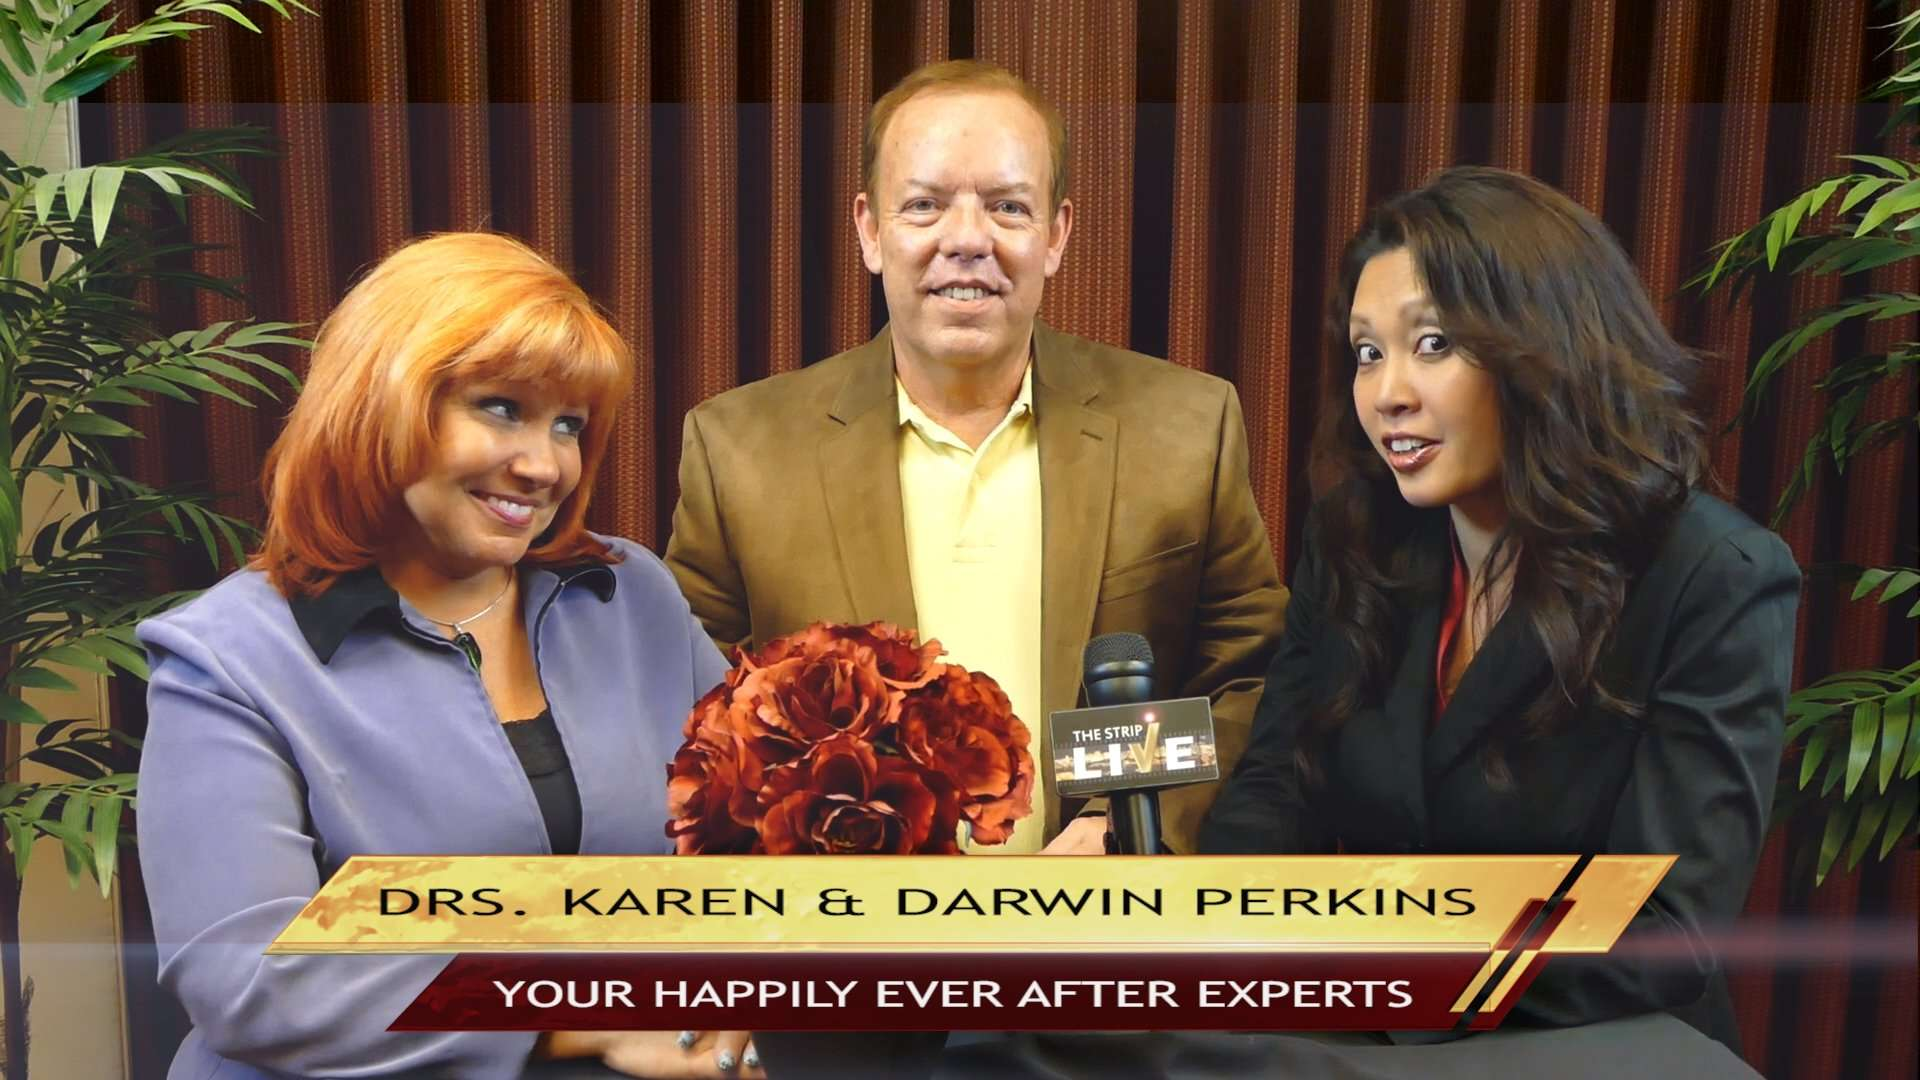 Want more productivity in your company? Listen to workplace happiness experts Drs. Karen and Darwin Perkins